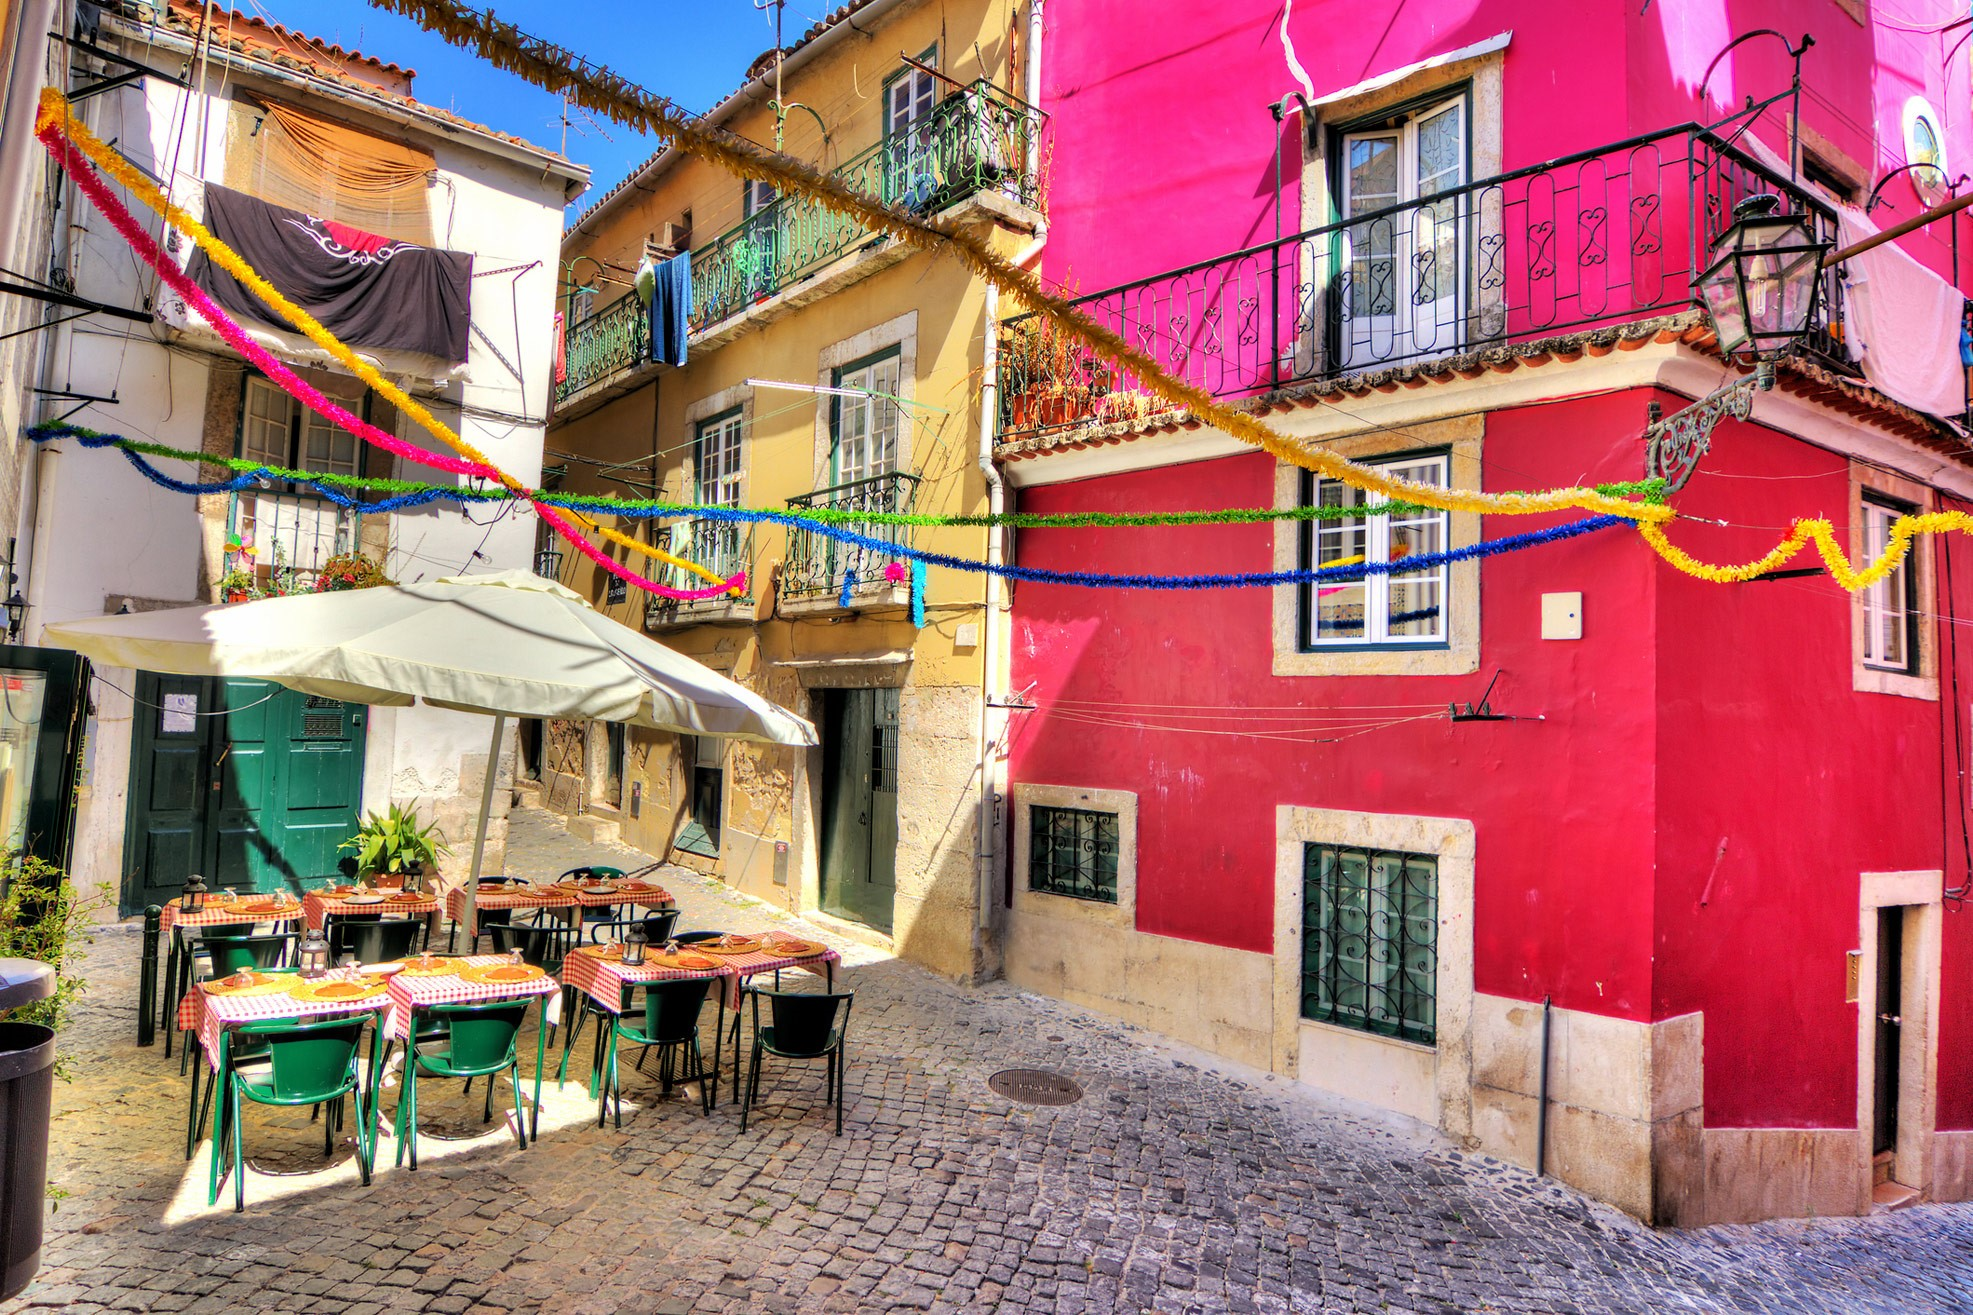 10 THINGS YOU NEVER KNEW ABOUT LISBON